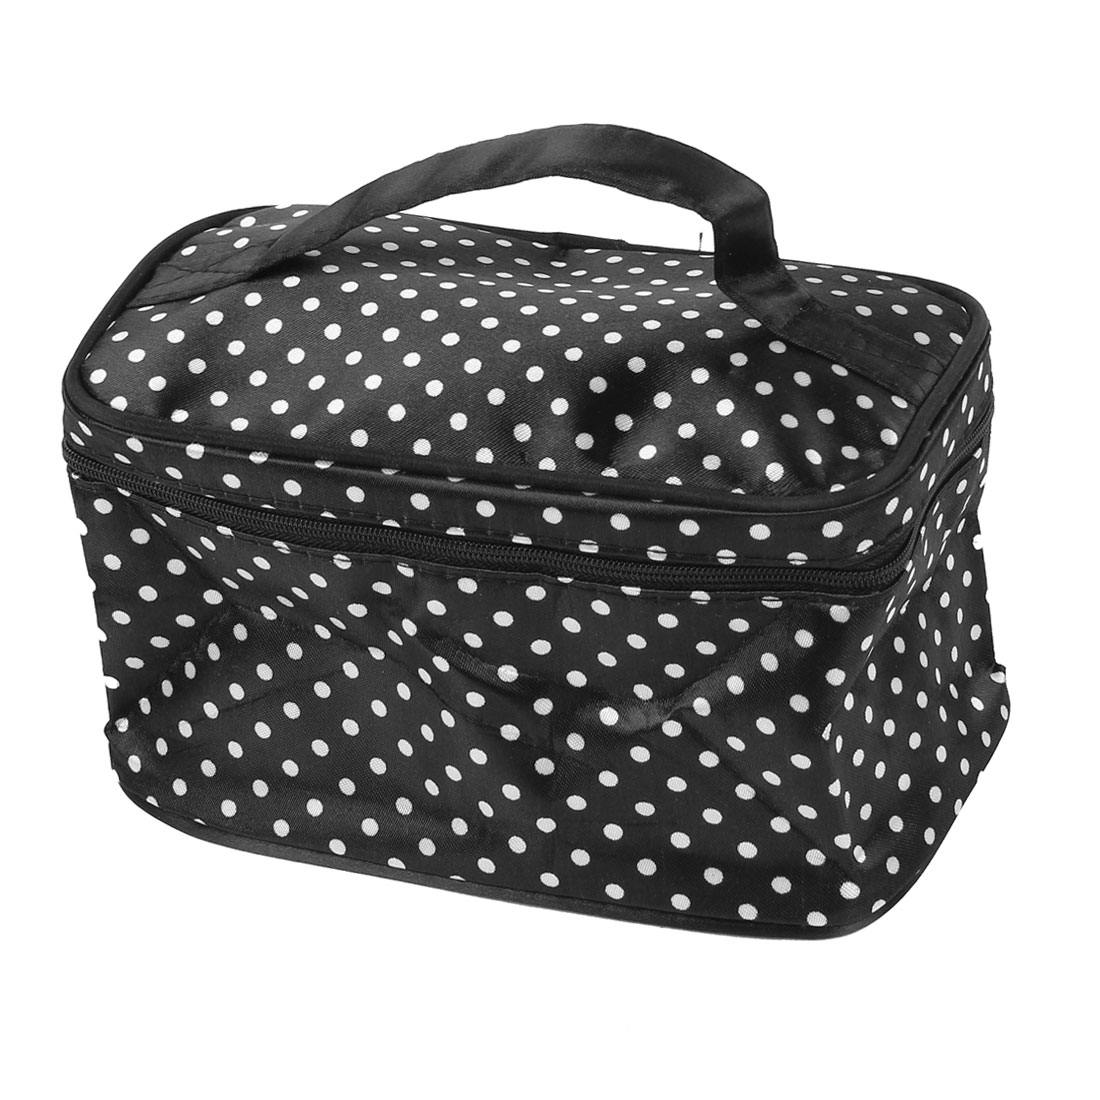 White Dots Print Mirror Pockets Hand Strap Cosmetic Makeup Bag Black